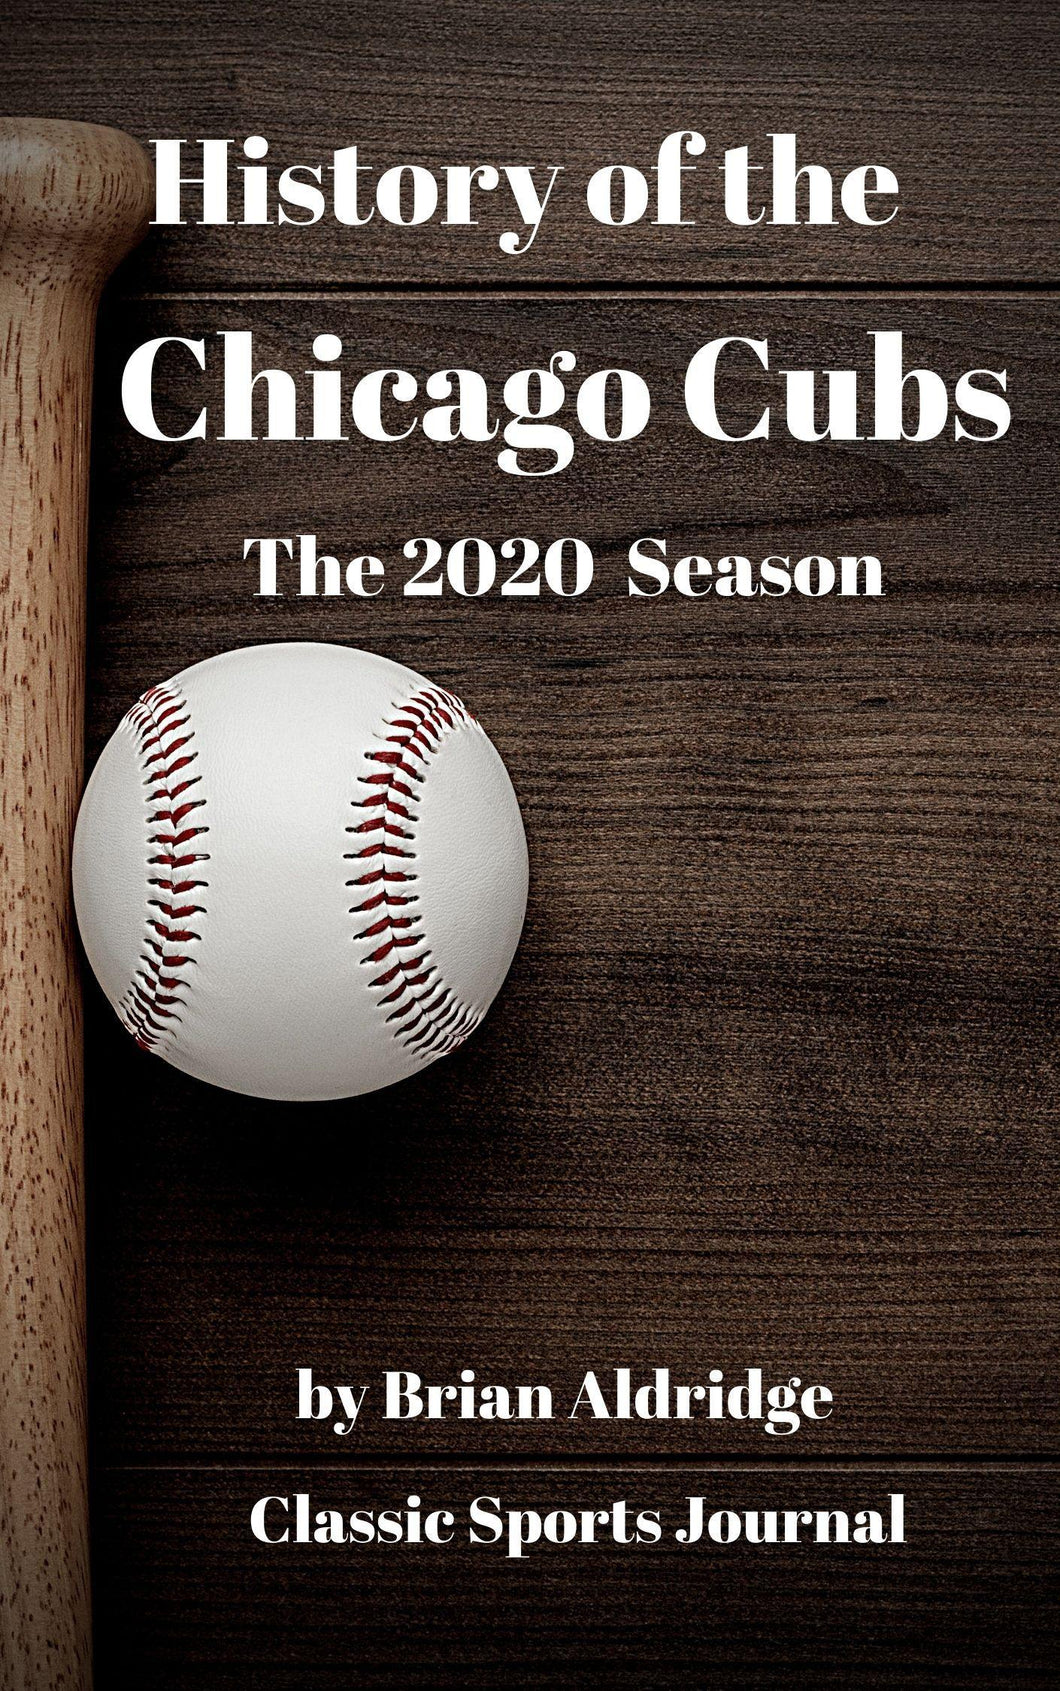 History of the Chicago Cubs 2020